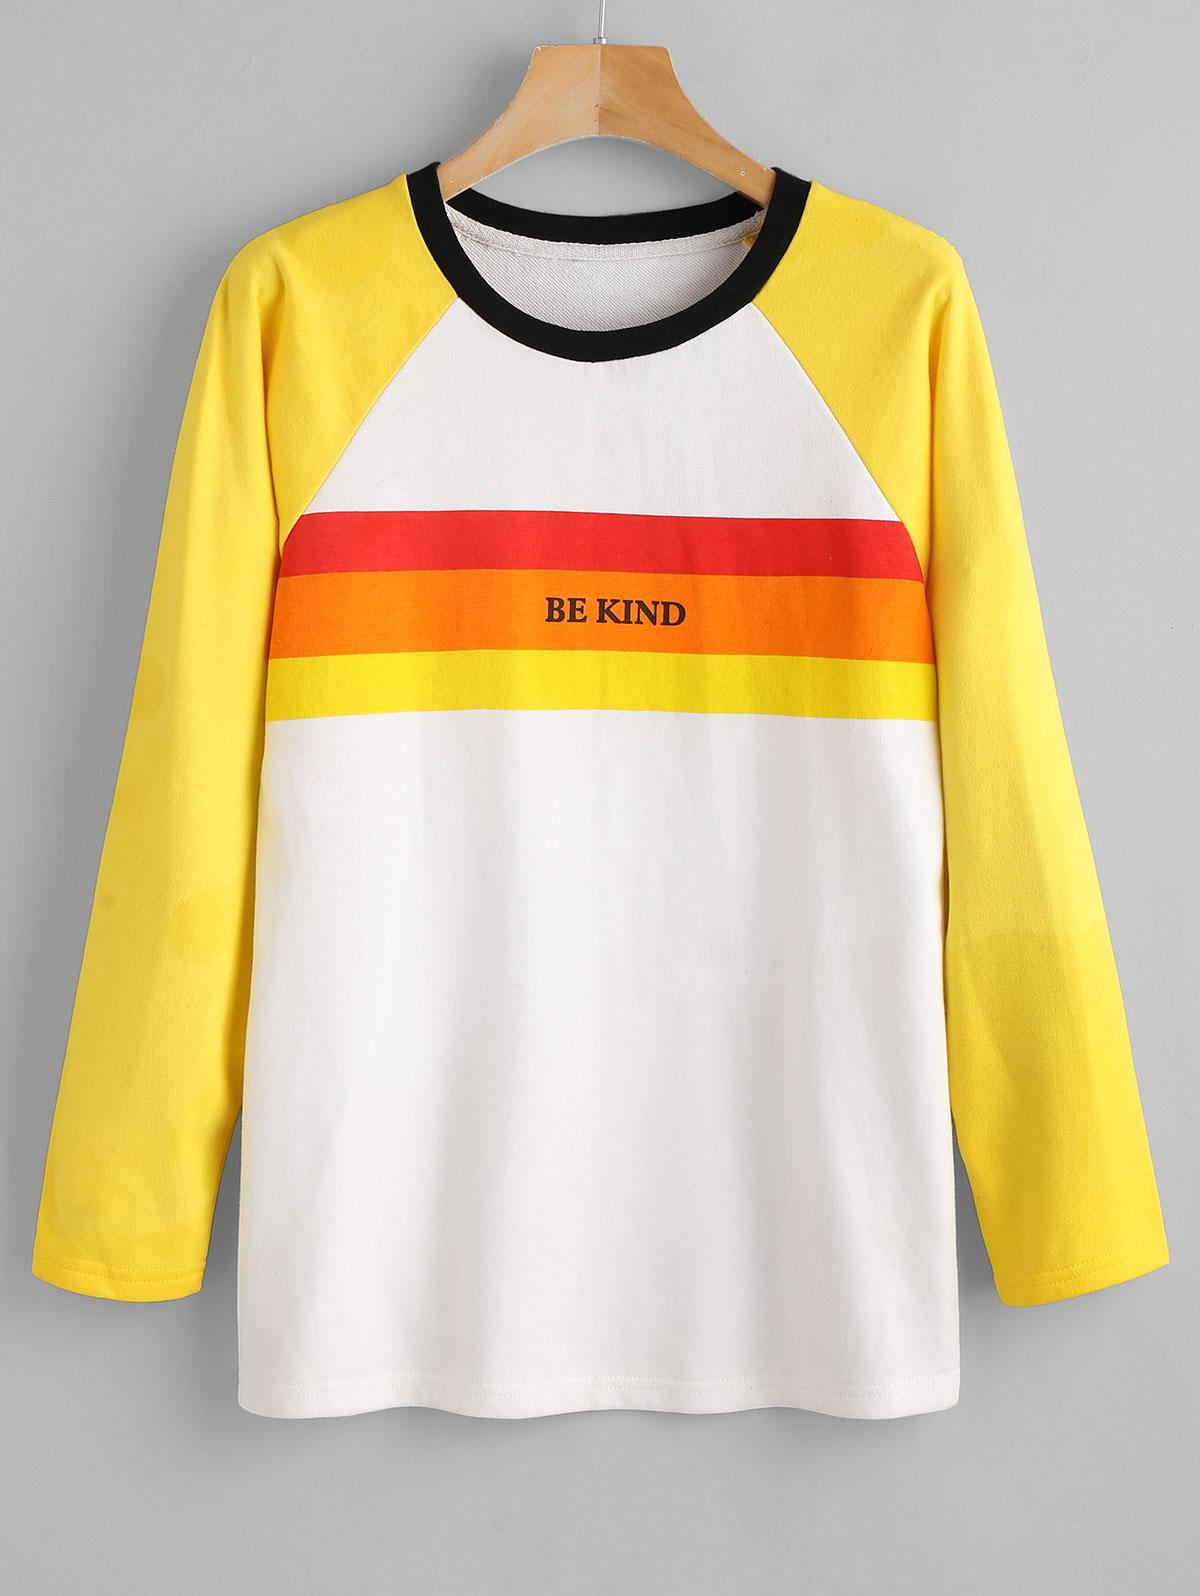 ZAFUL Raglan Sleeve Graphic Striped Sweatshirt